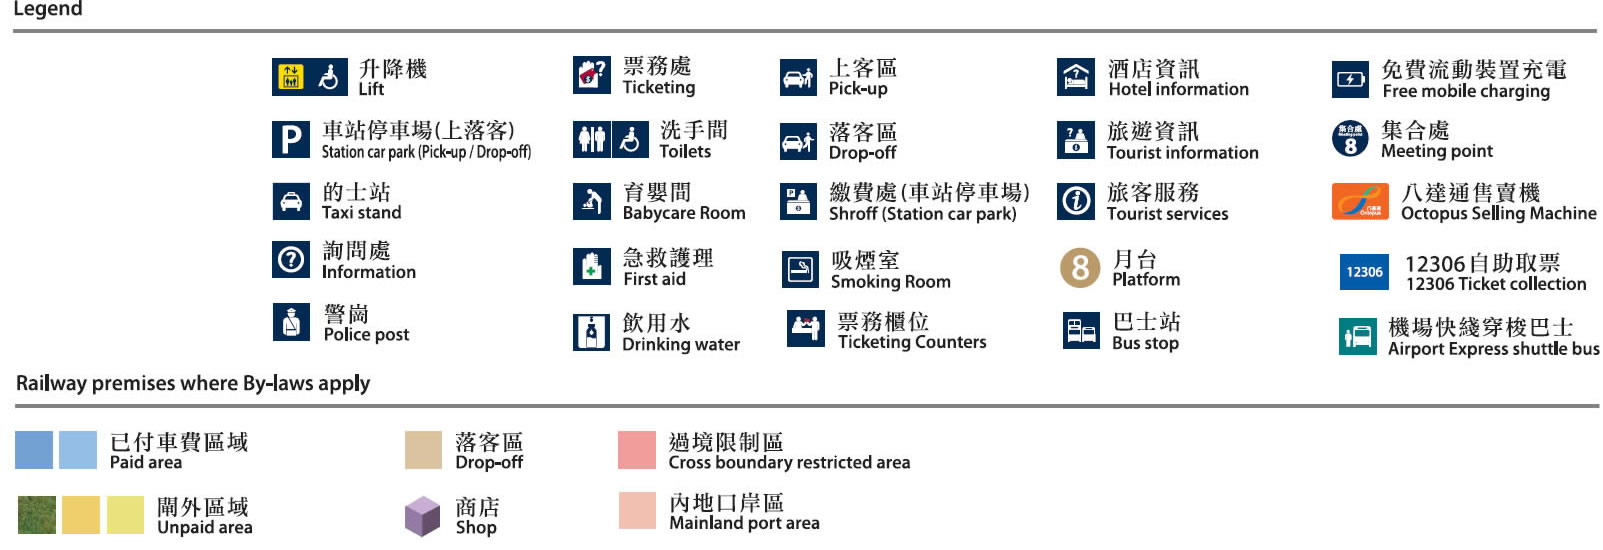 Legend of layout plan map, Hong Kong West Kowloon Railway Station